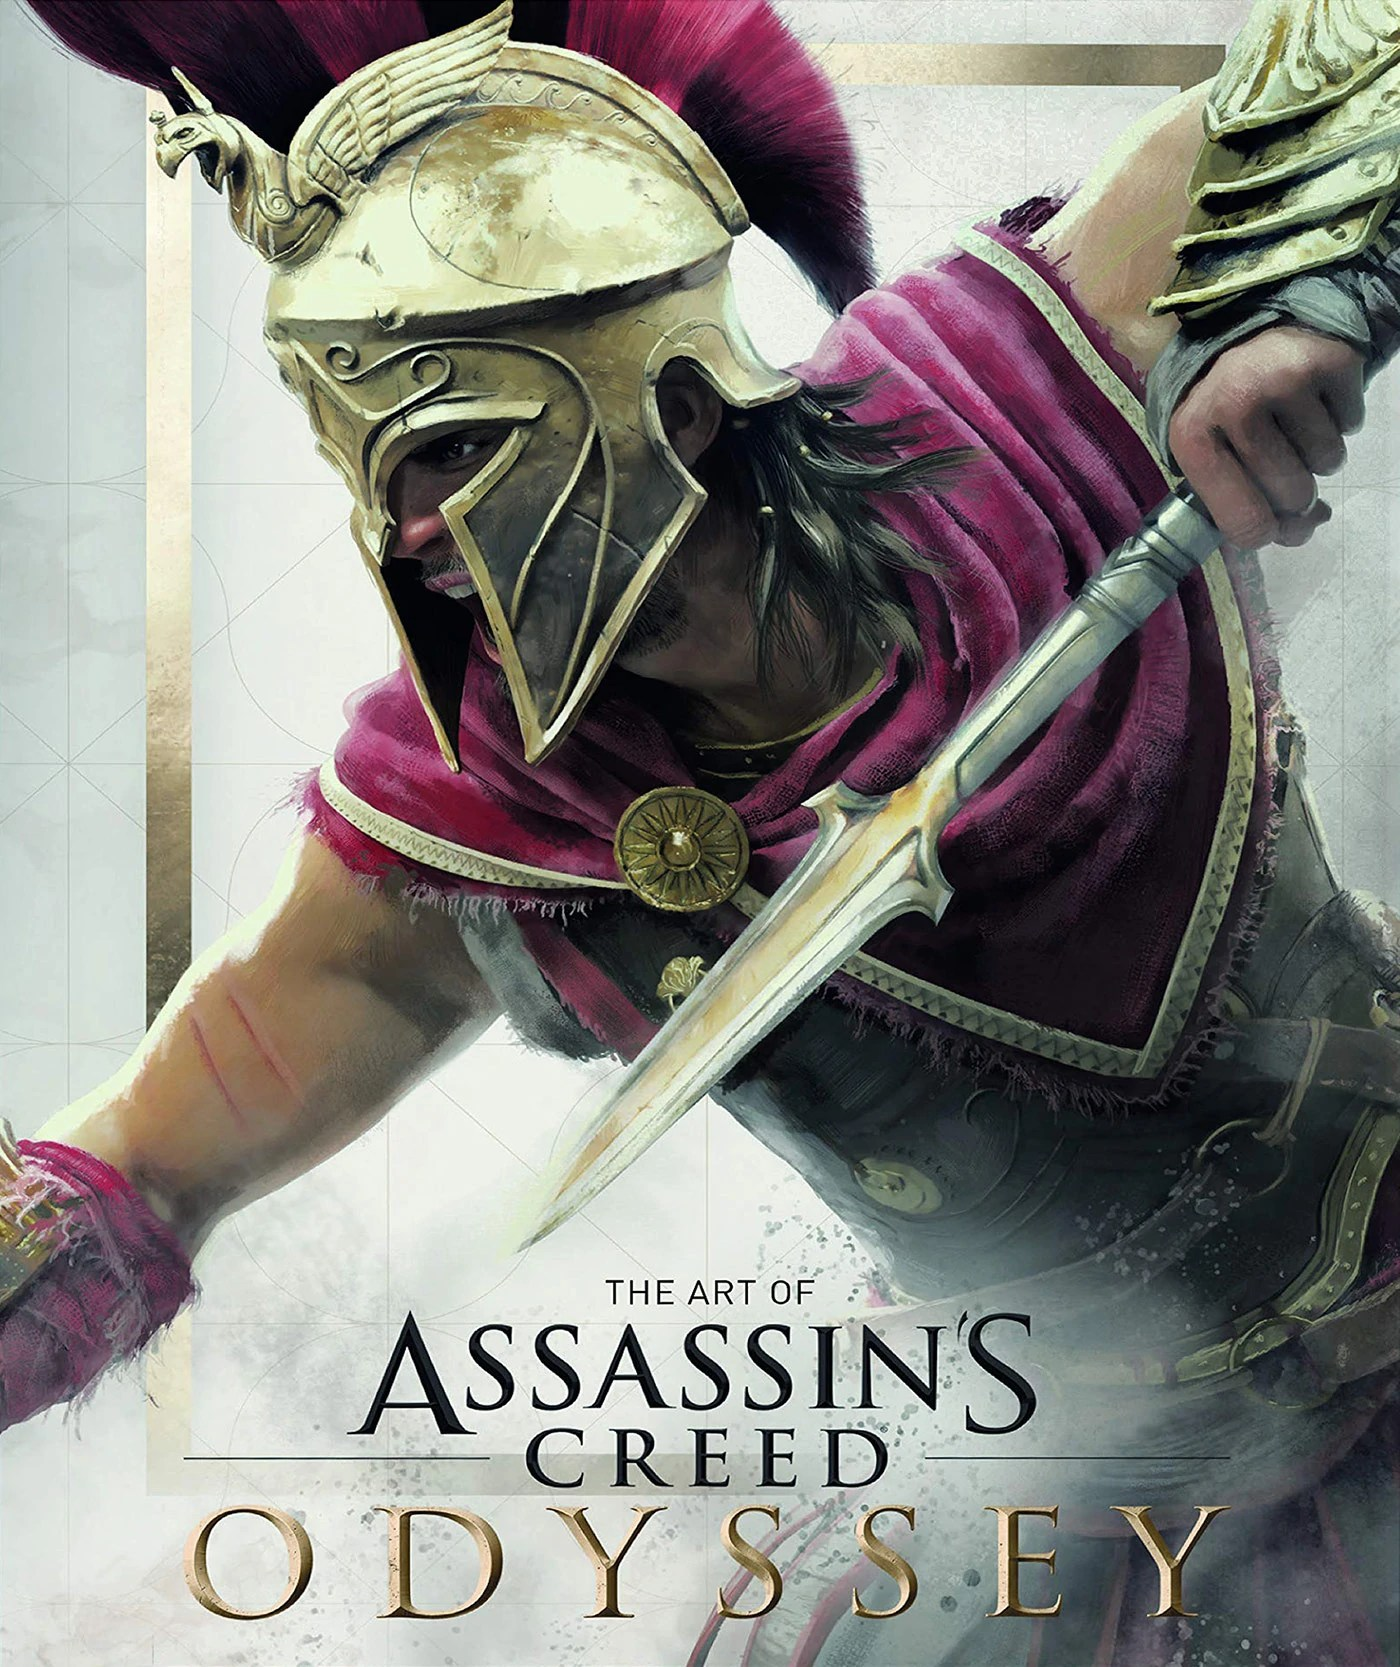 Epic Titan Fall Wallpaper The Art Of Assassin S Creed Odyssey Assassin S Creed